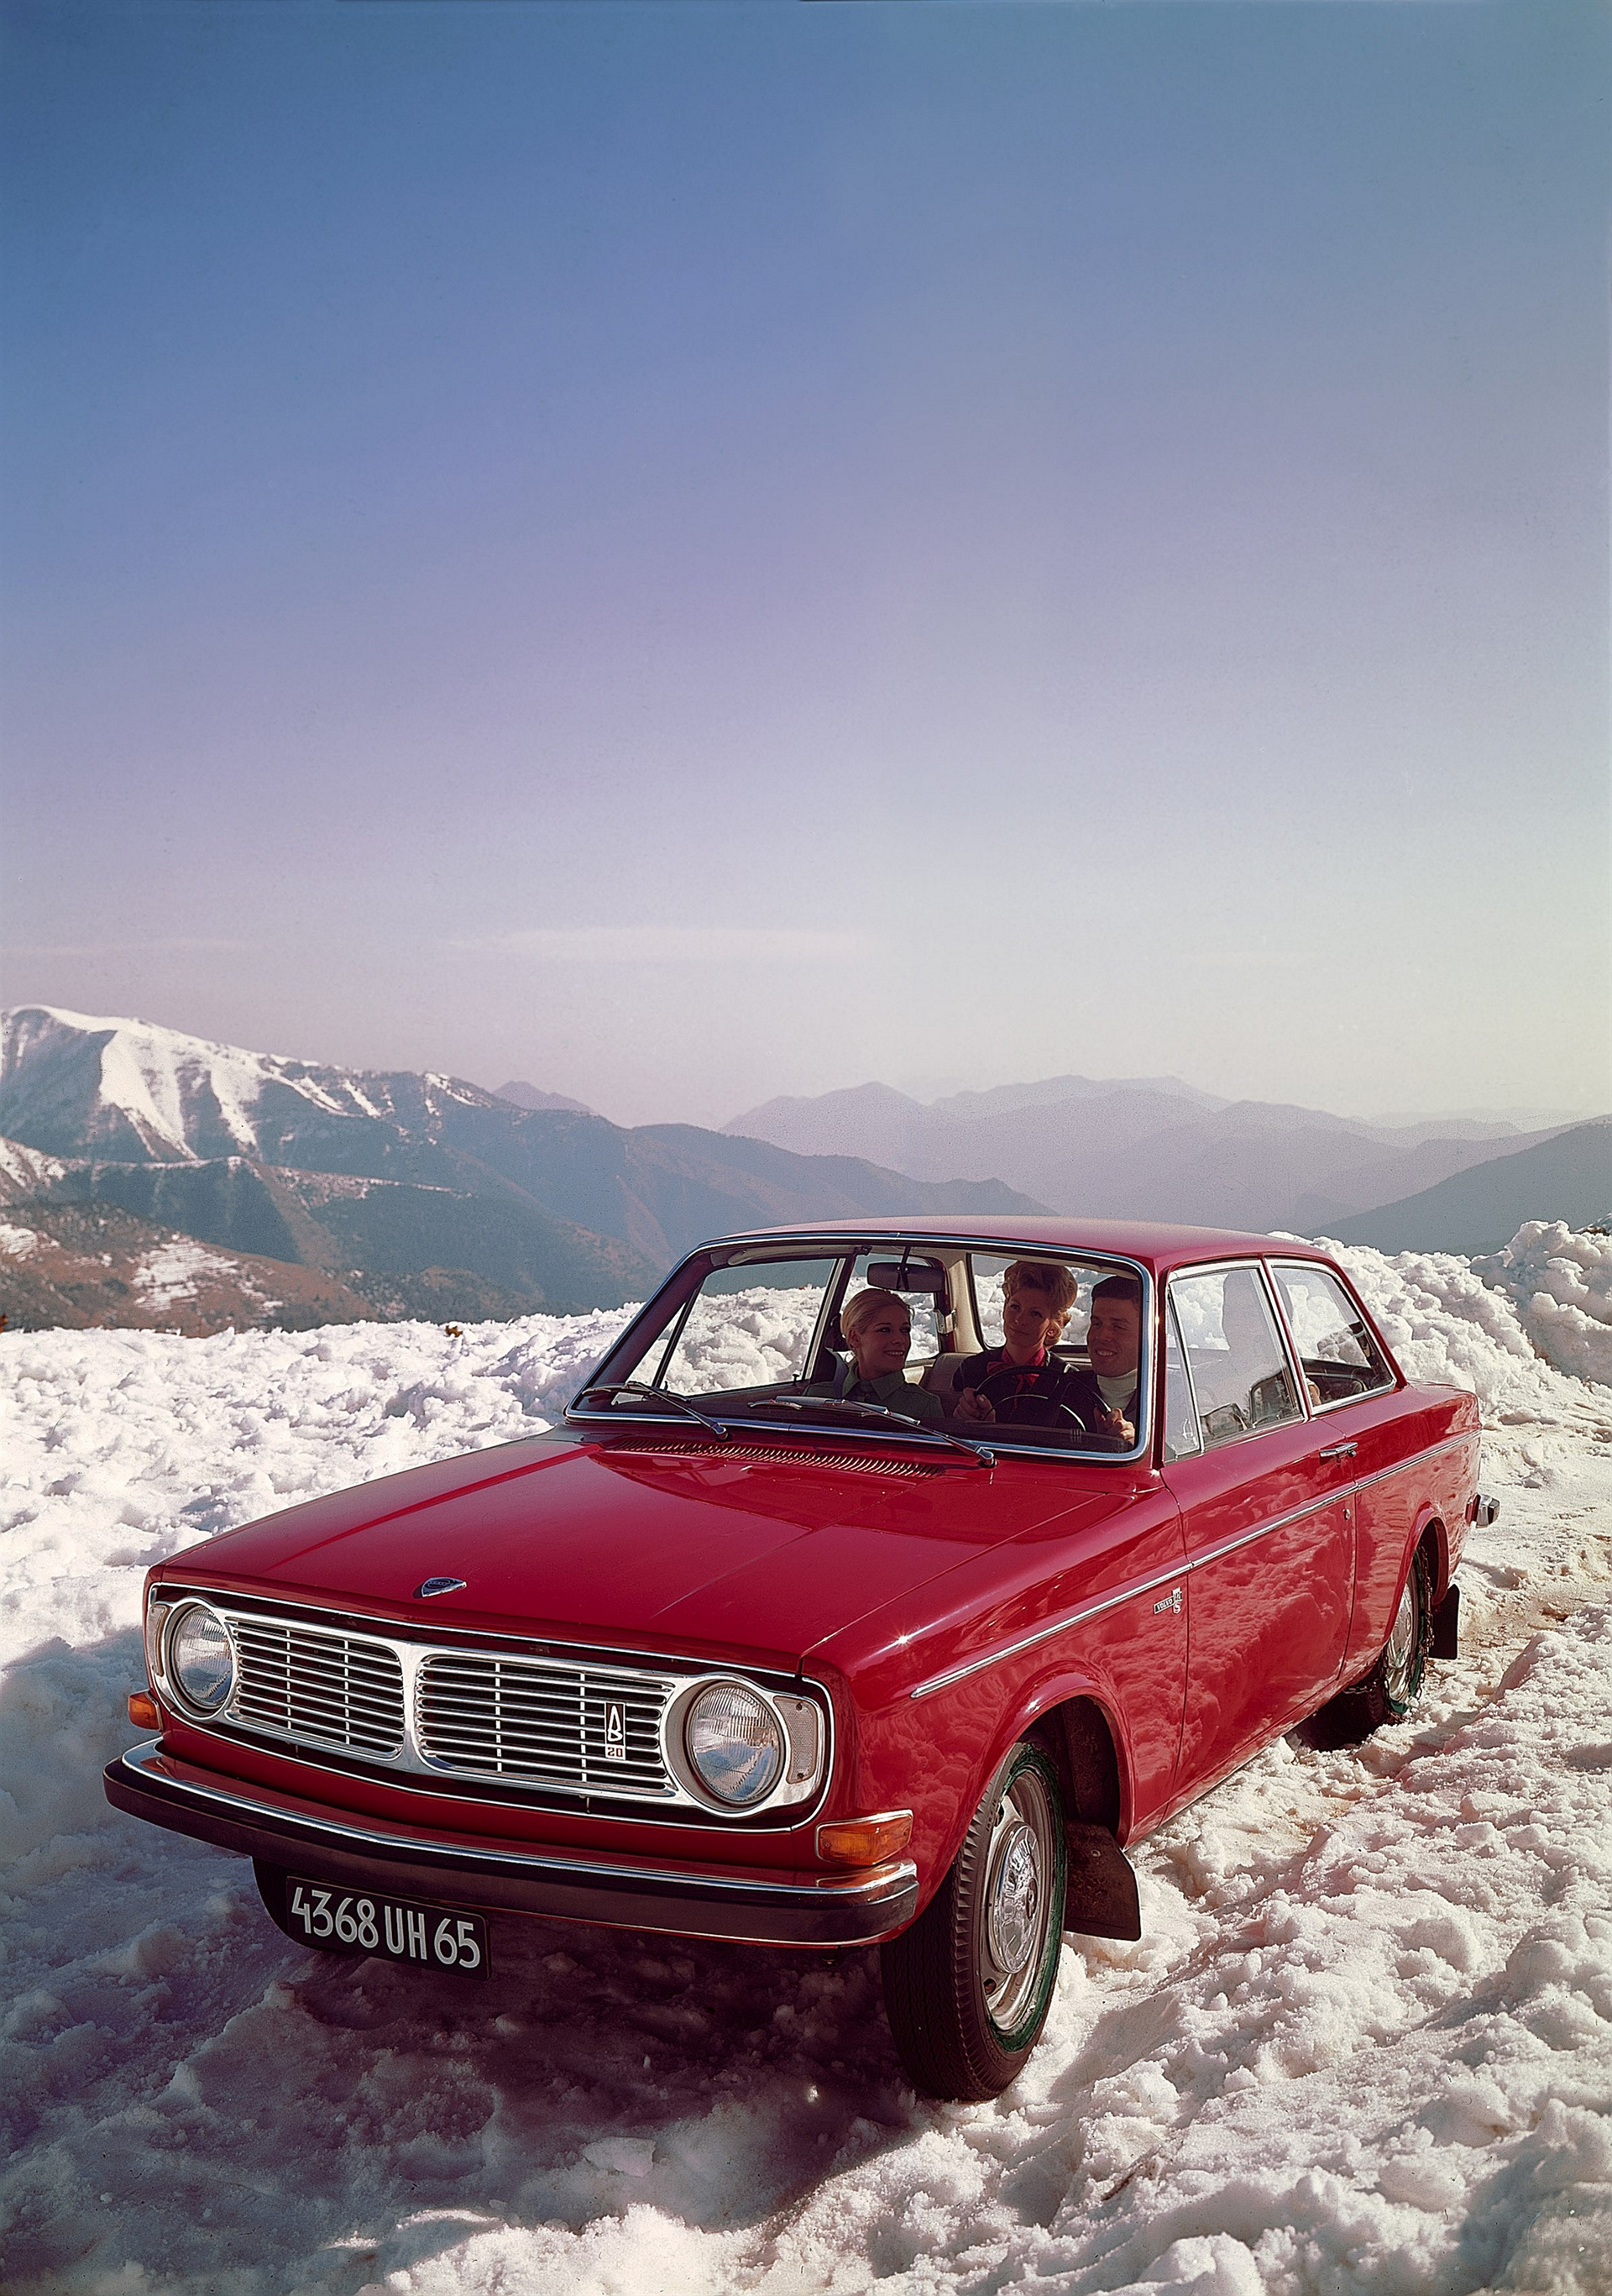 Volvo 142 © Zhejiang Geely Holding Group Co., Ltd